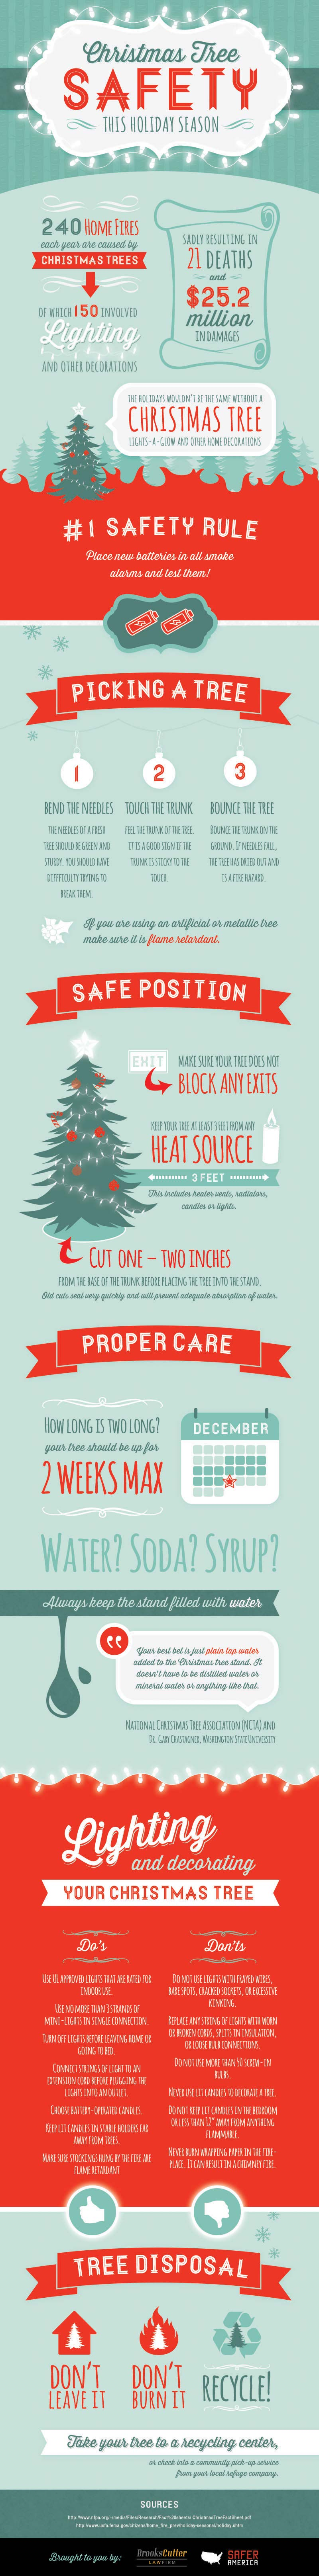 Christmas Decoration Safety-Infographic